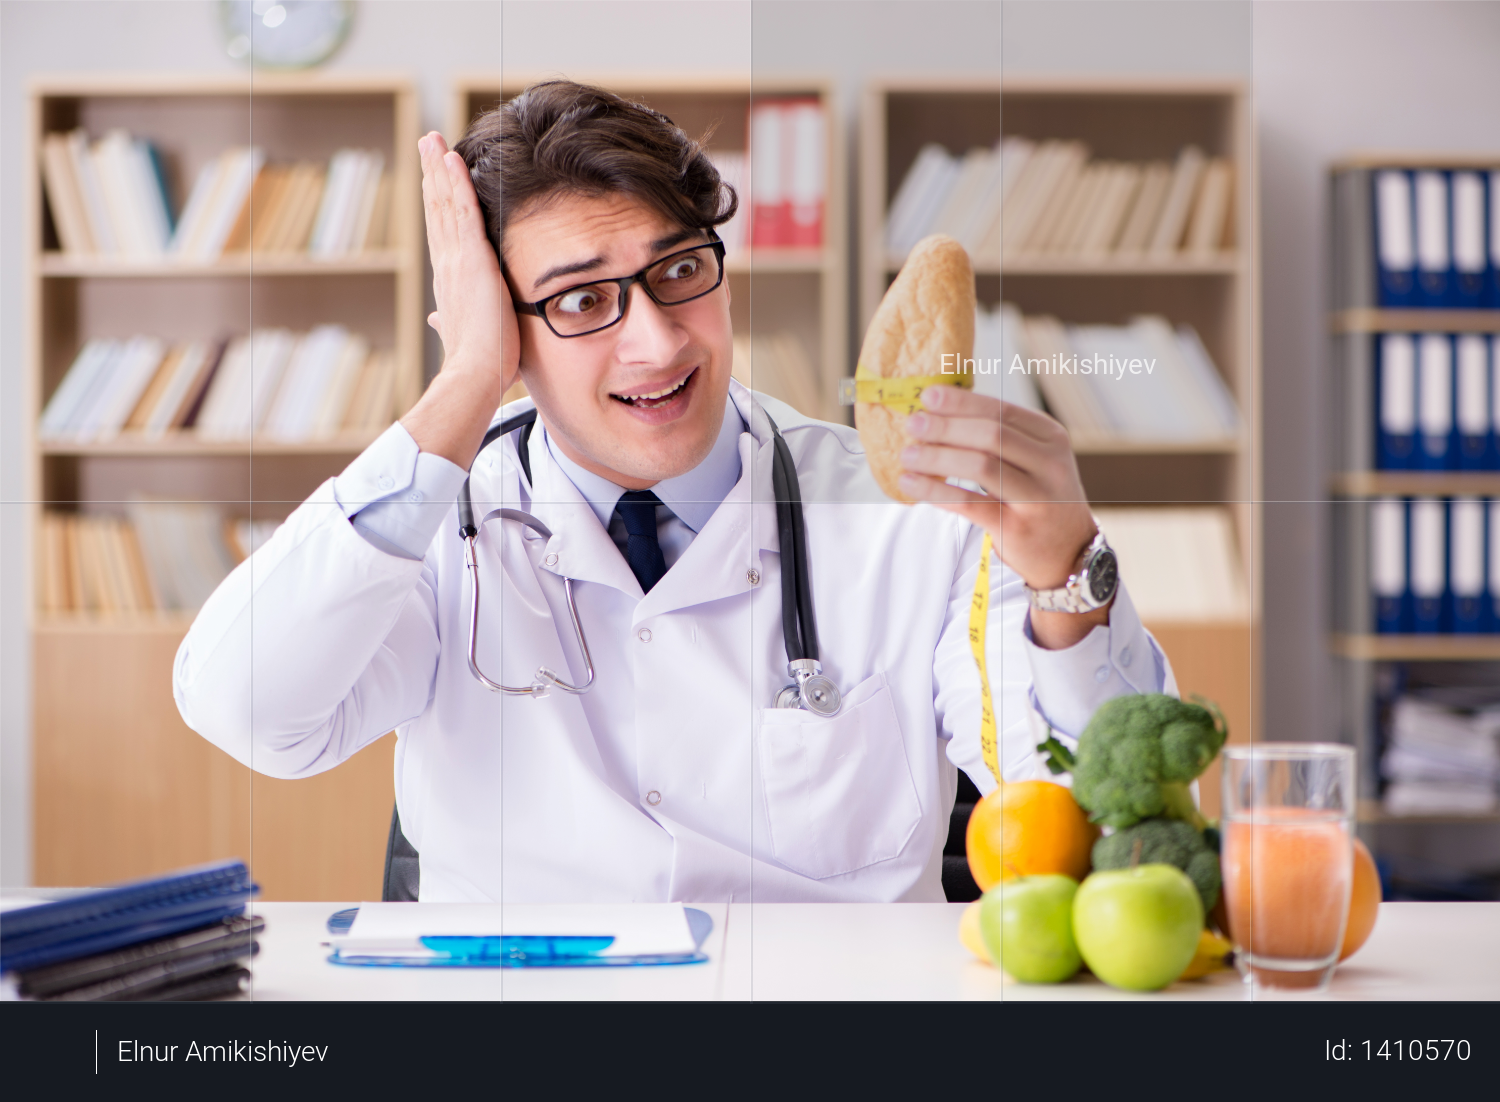 Doctor in dieting concept with fruits and vegetables Photo